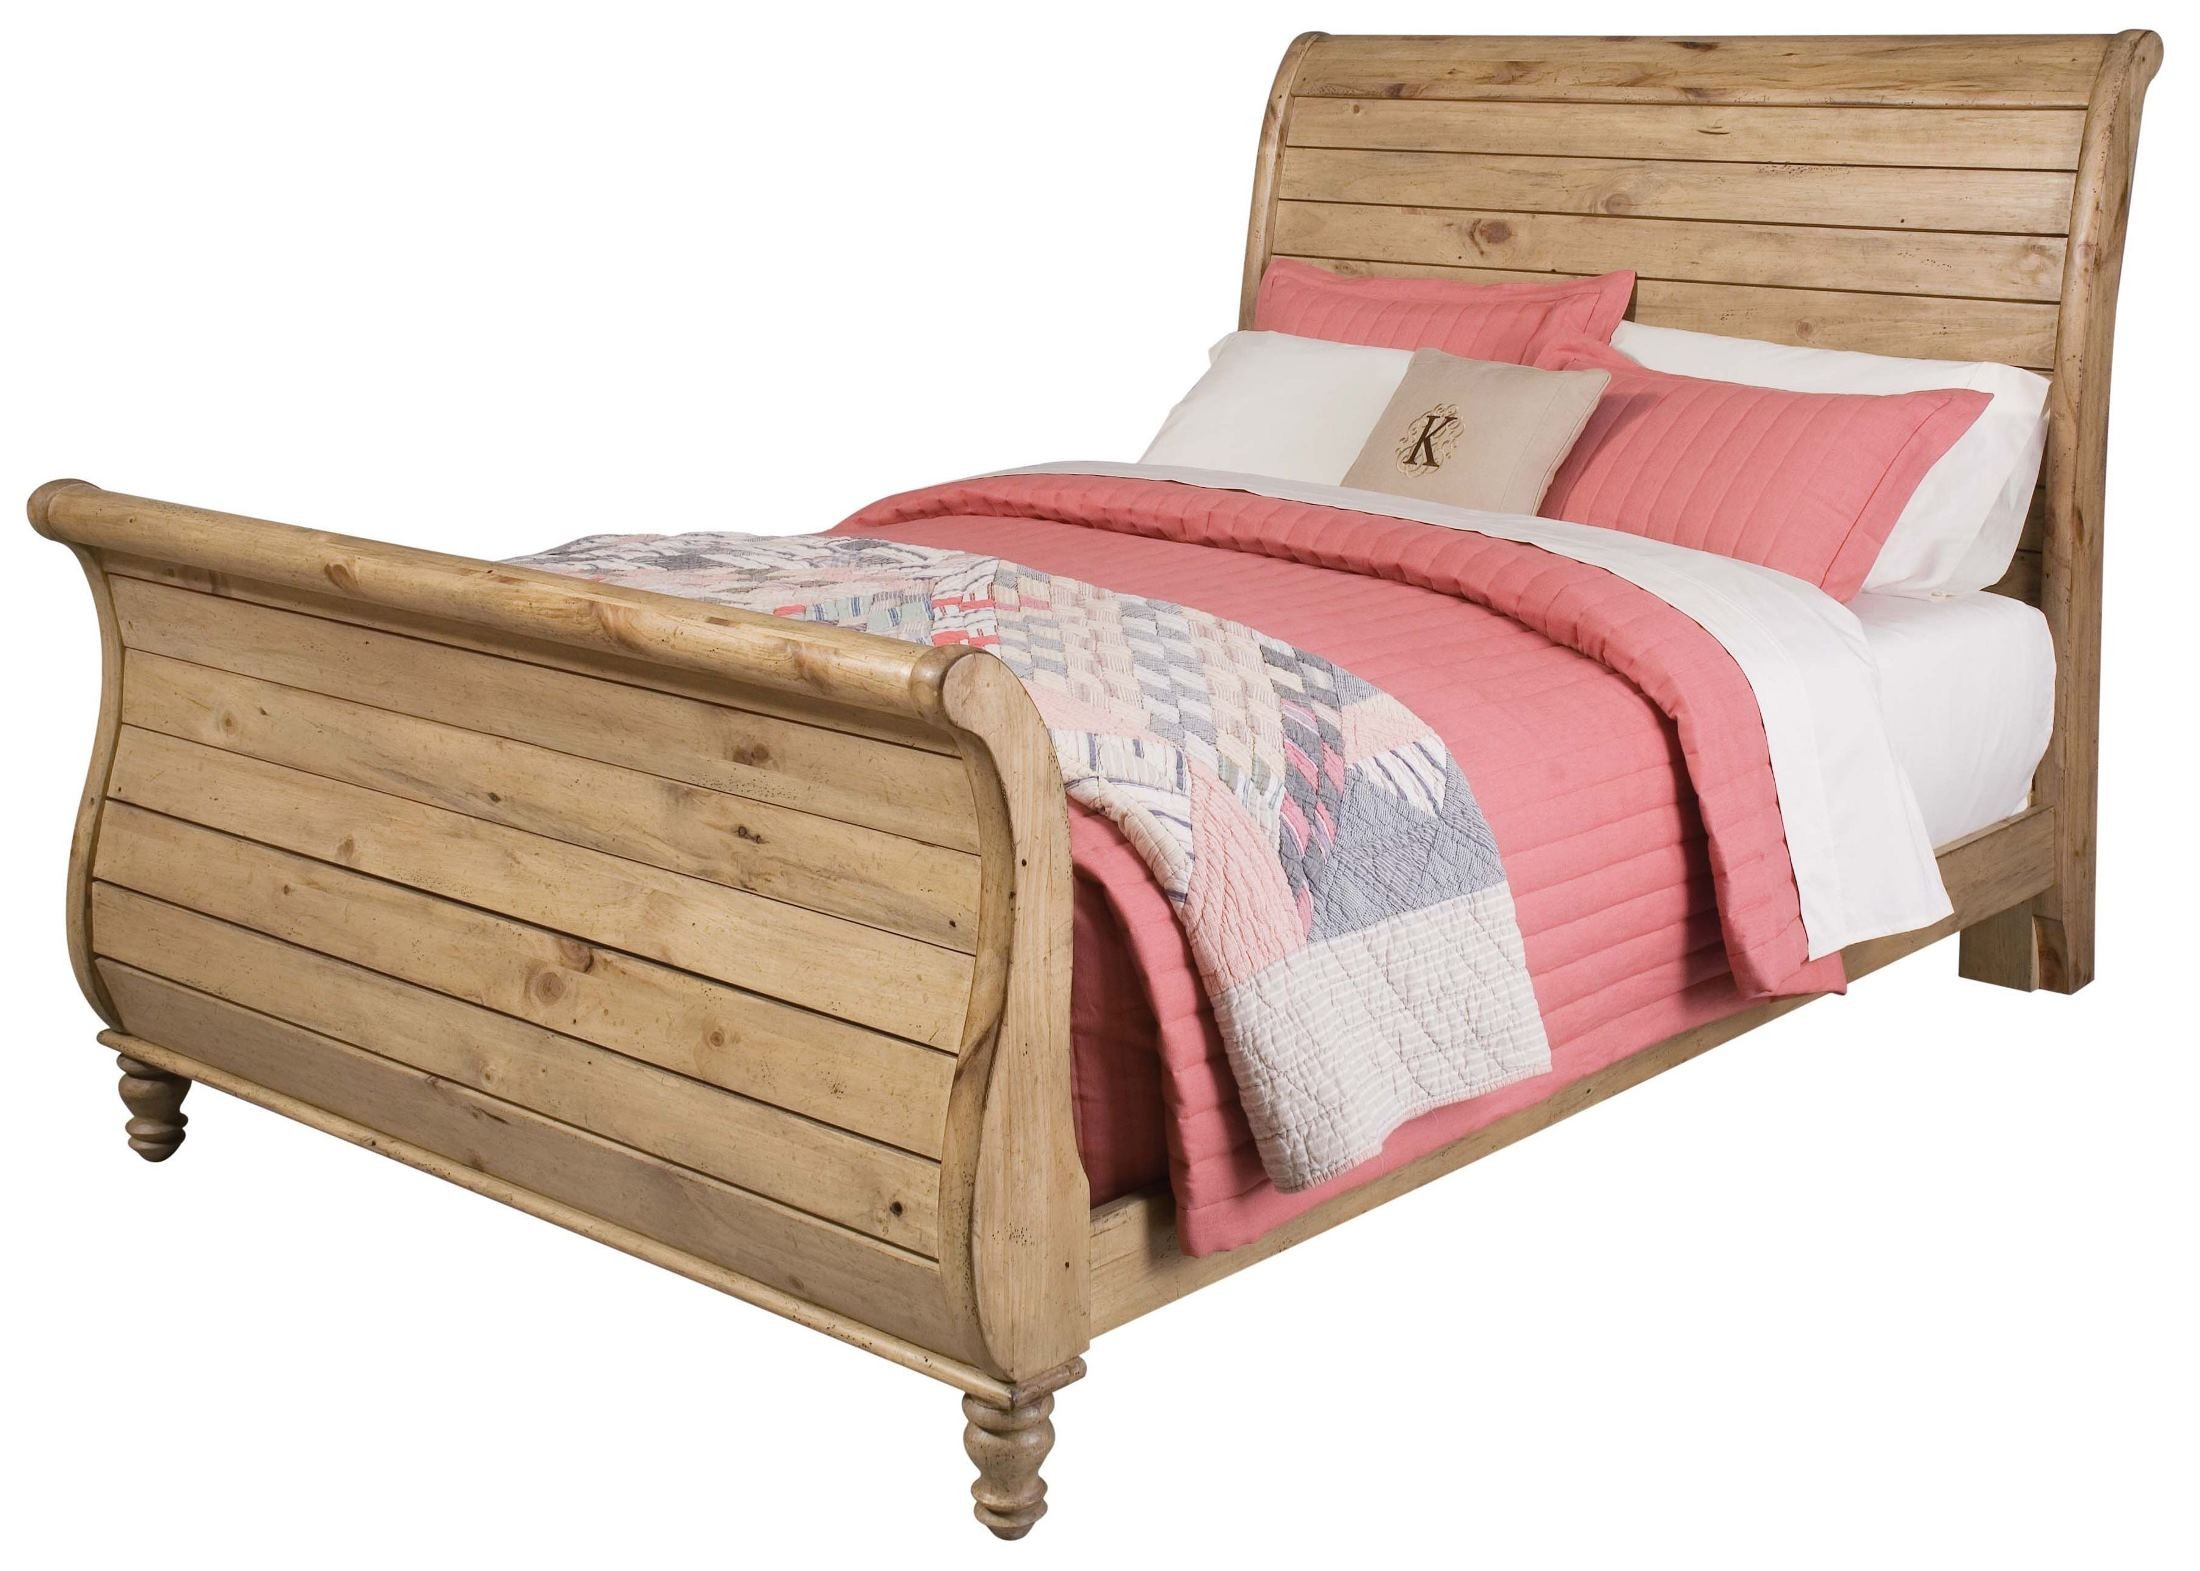 Homecoming Vintage Pine Queen Sleigh Bed From Kincaid 33